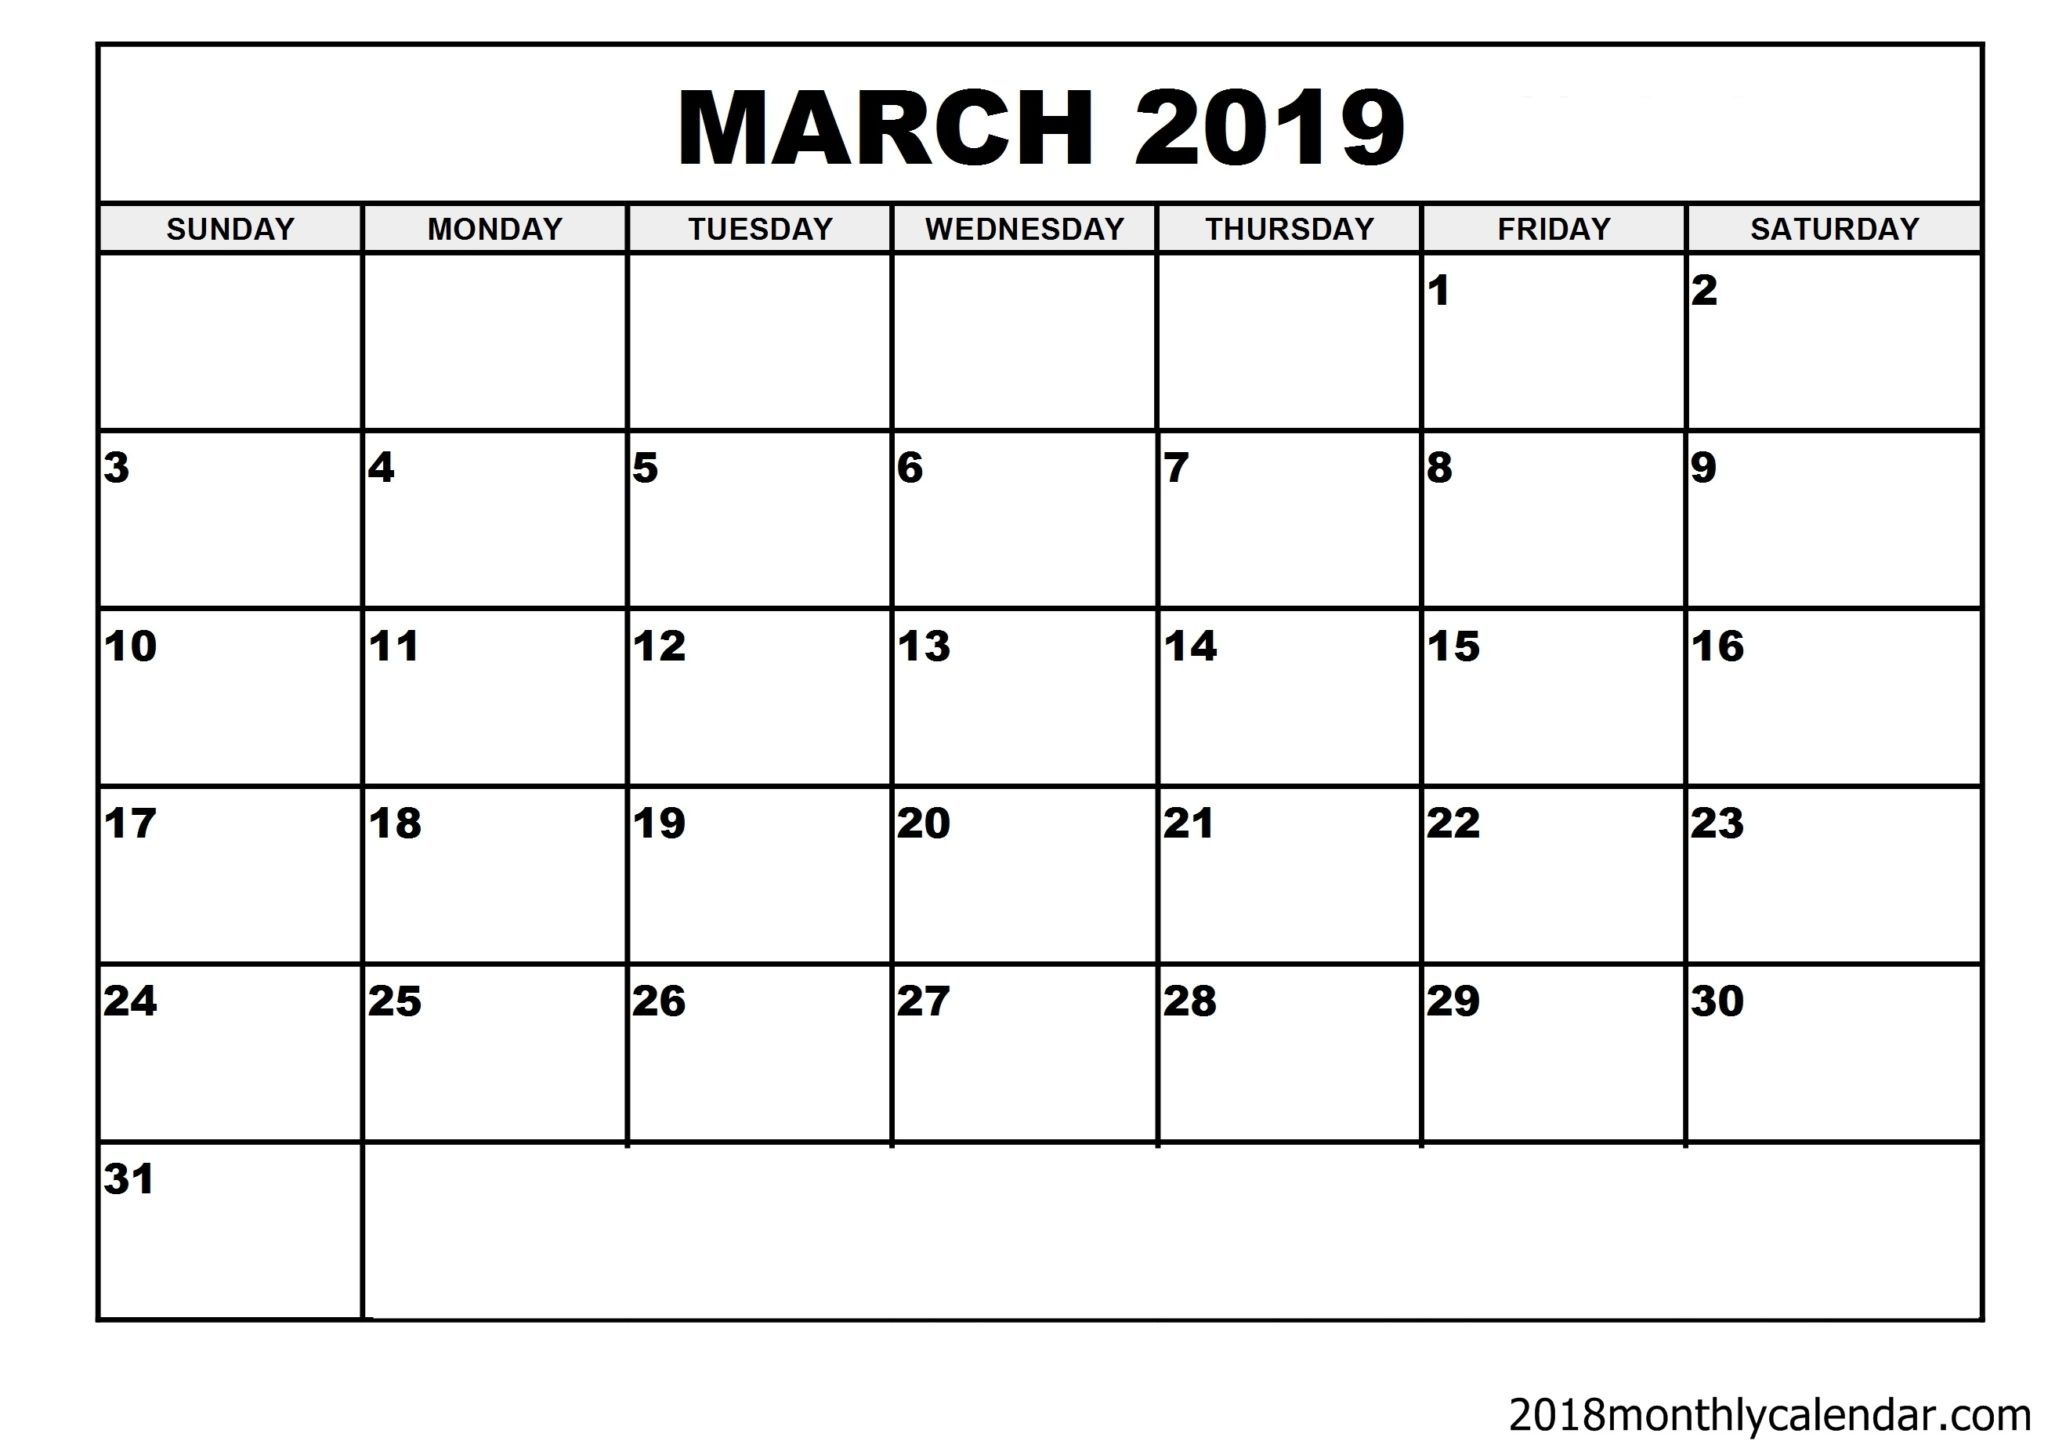 Printable Calendar March 2019.Download March 2019 Calendar Blank Template Editable Calendar